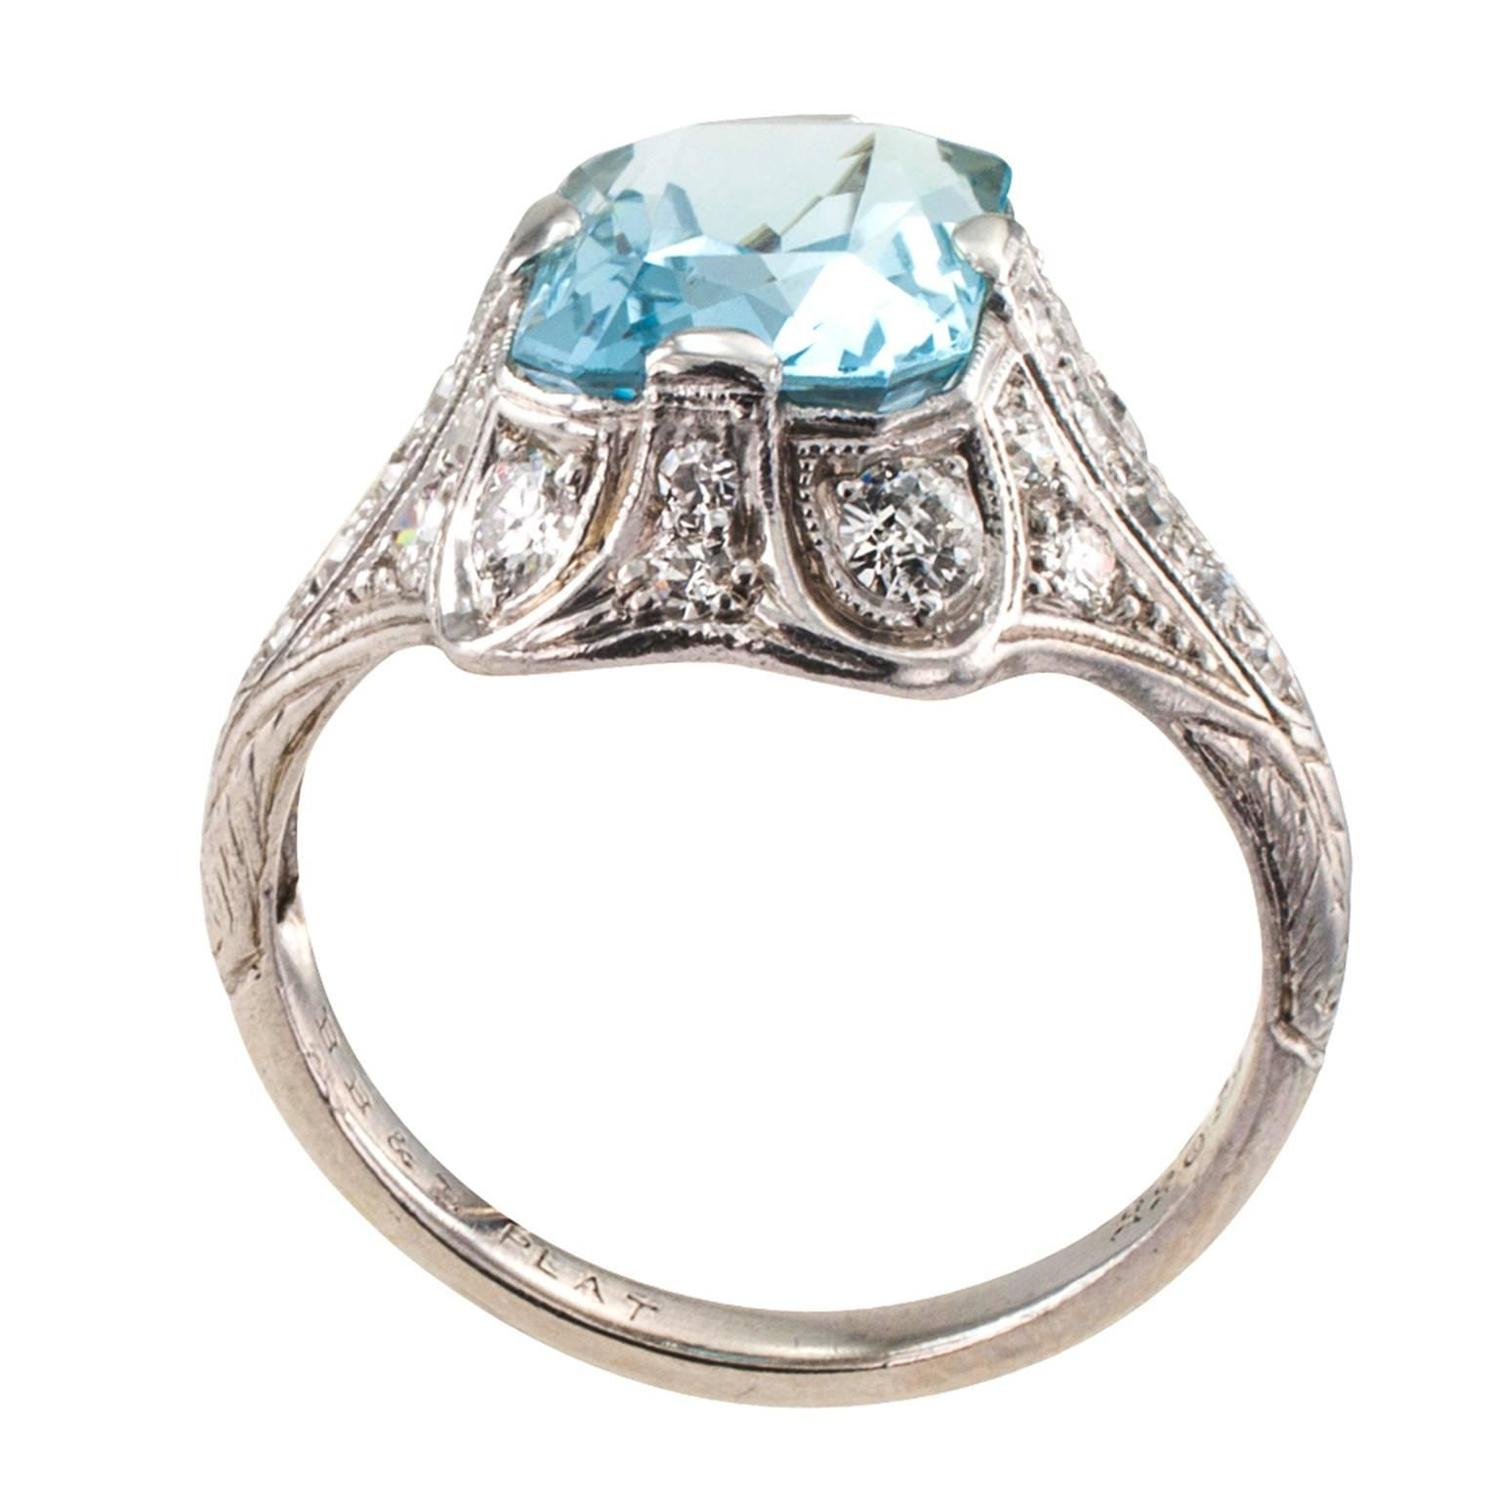 bailey banks and biddle art deco aquamarine diamond